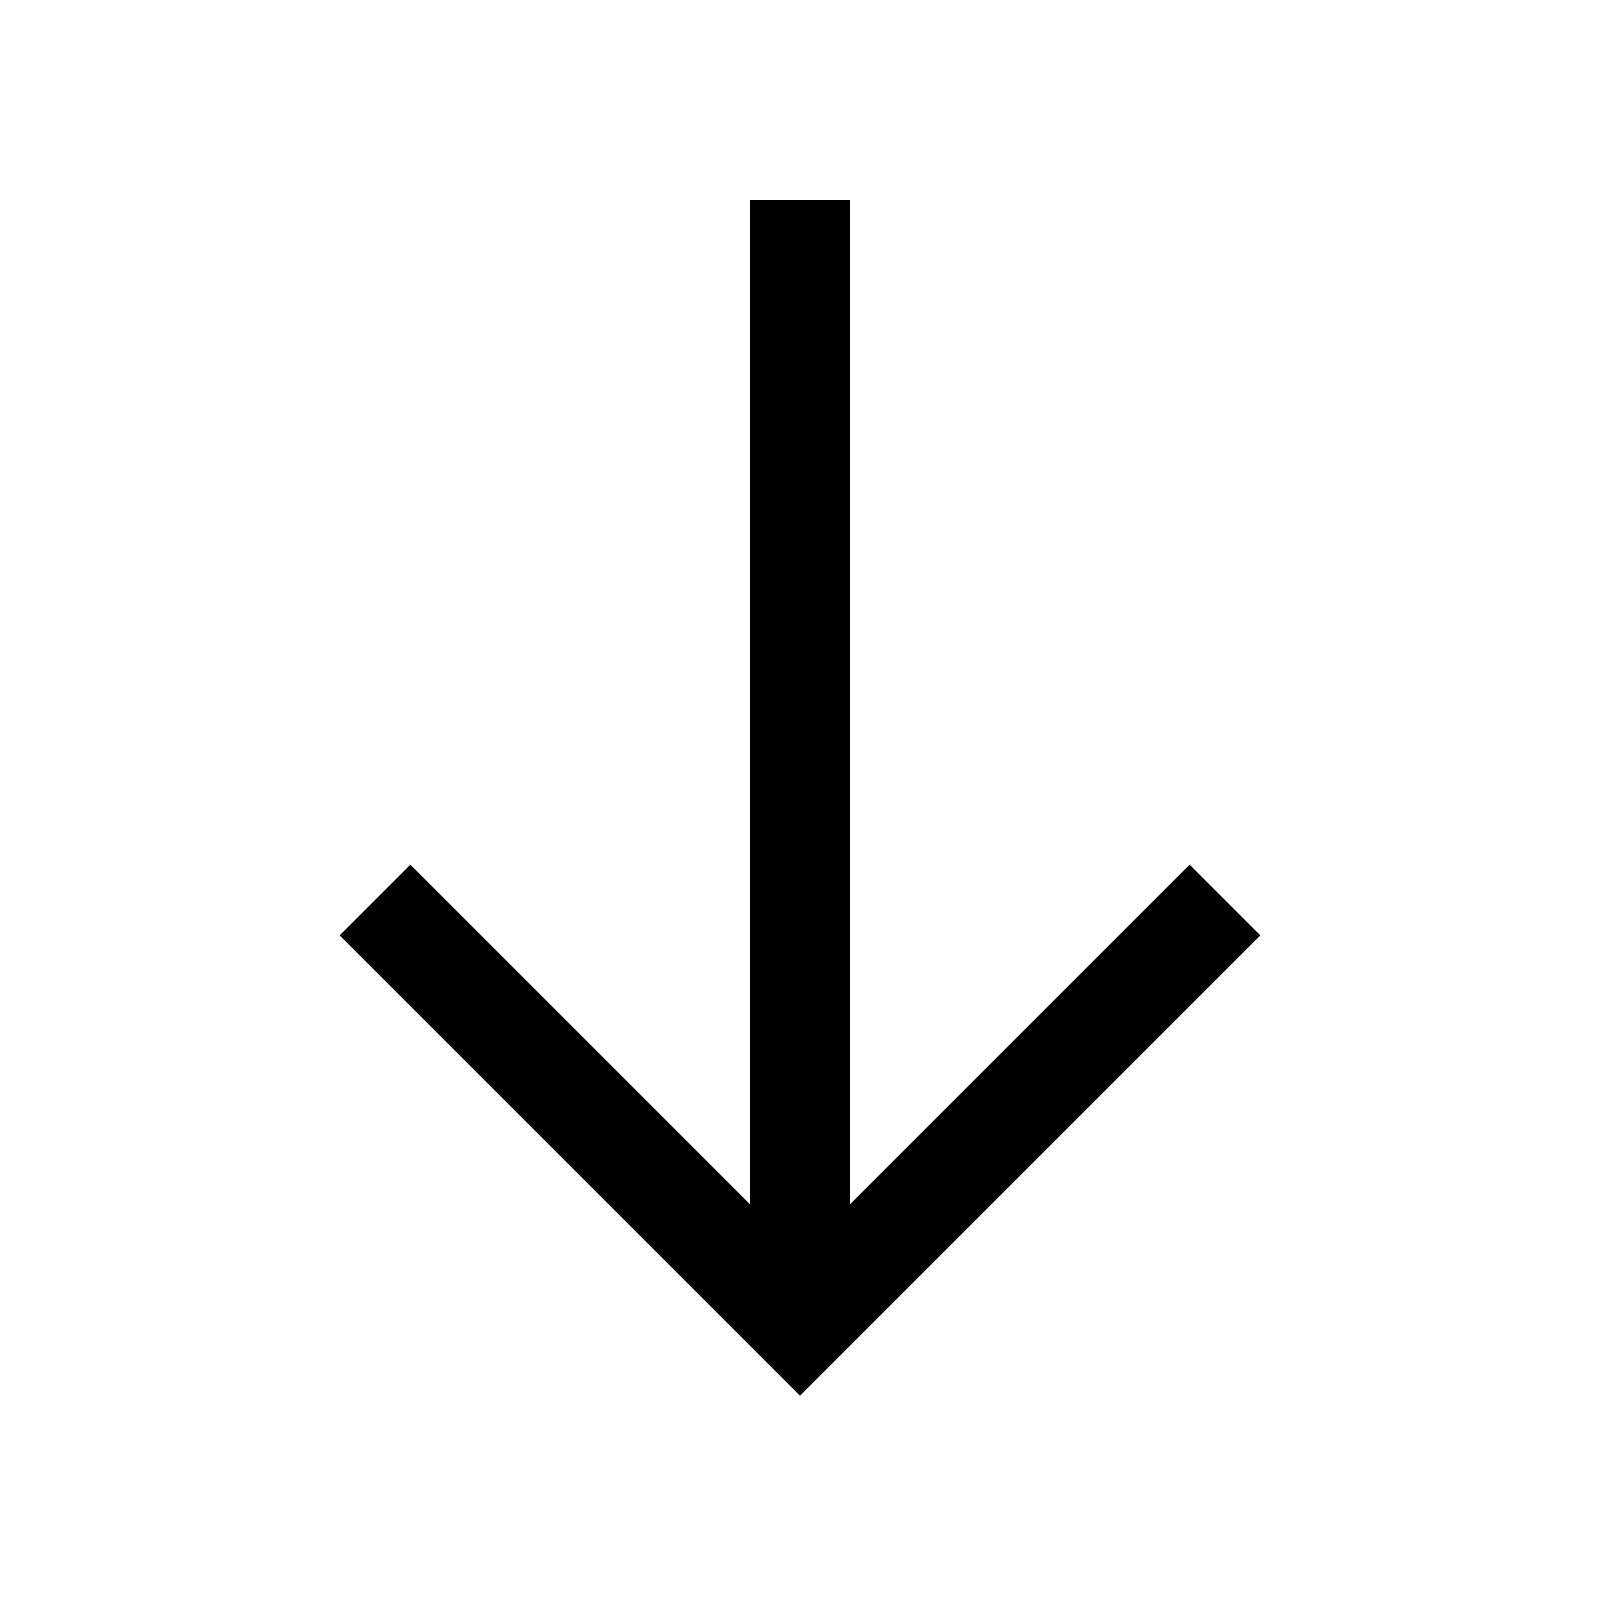 Arrow jpg black and white download Arrows Icons - Free Download at Icons8 black and white download